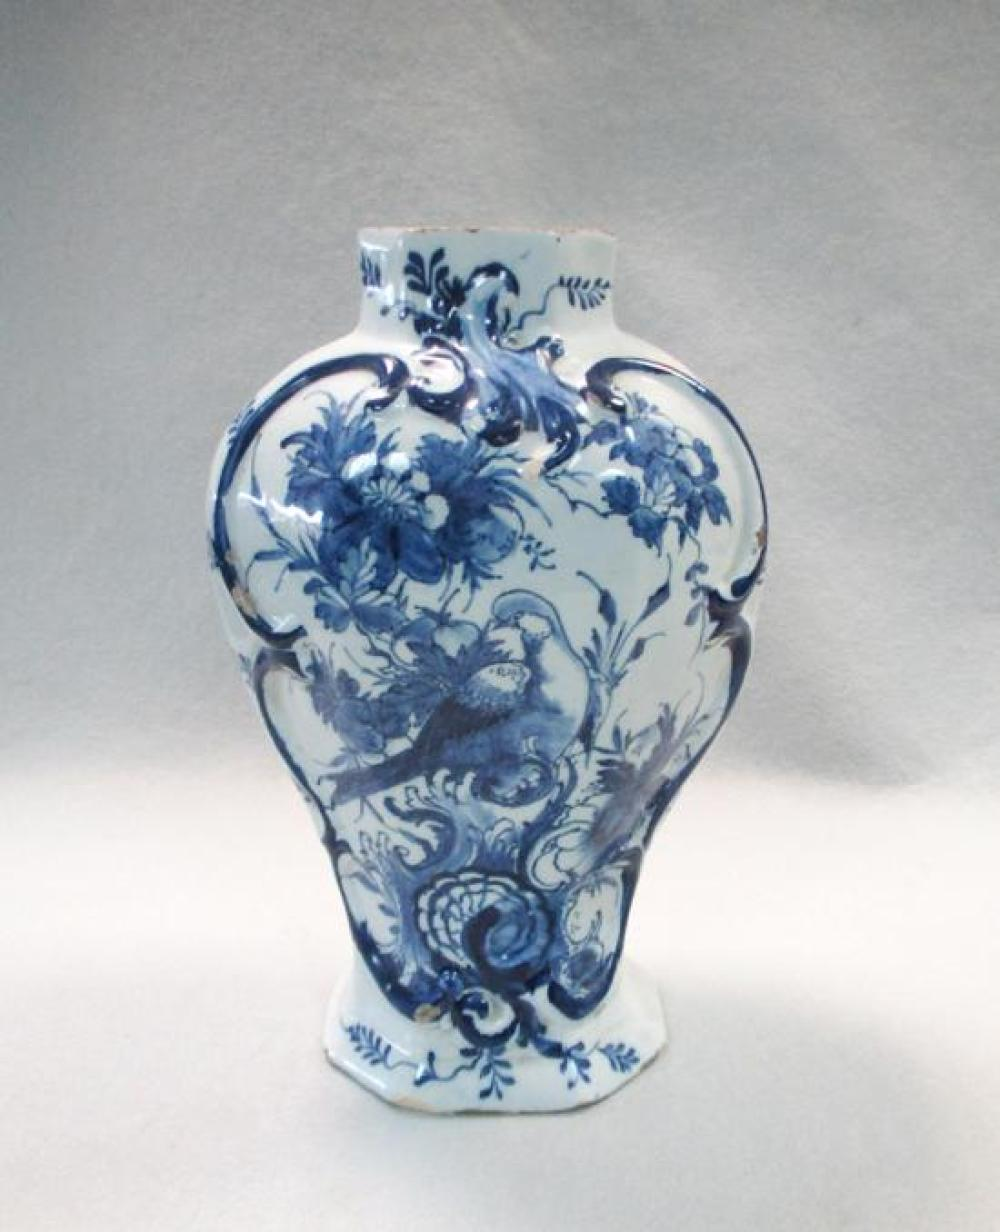 An 18th century Delft blue and white vase,